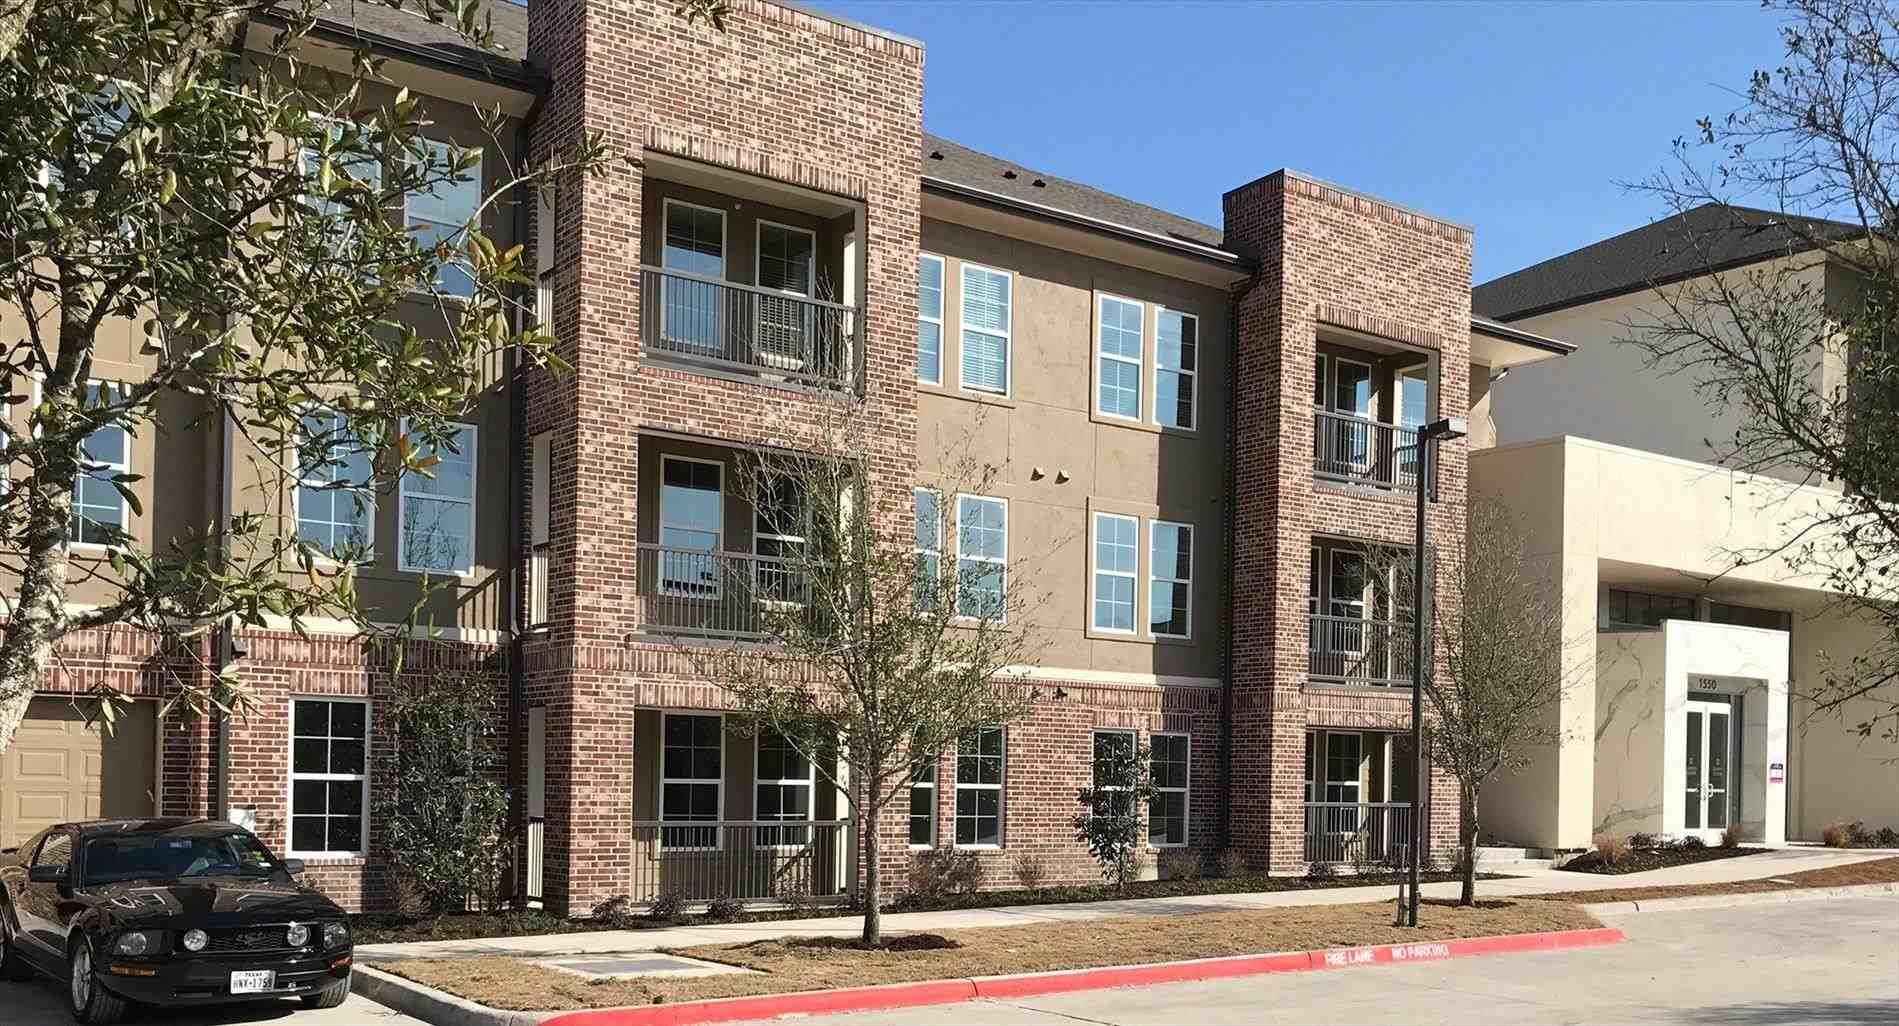 Plano Apartment Colonnade At Willow Bend Plano Tx Apartments Lincoln Property Company Lpc Bedro Bedroom Hotel Cool House Designs 2 Bedroom Apartment